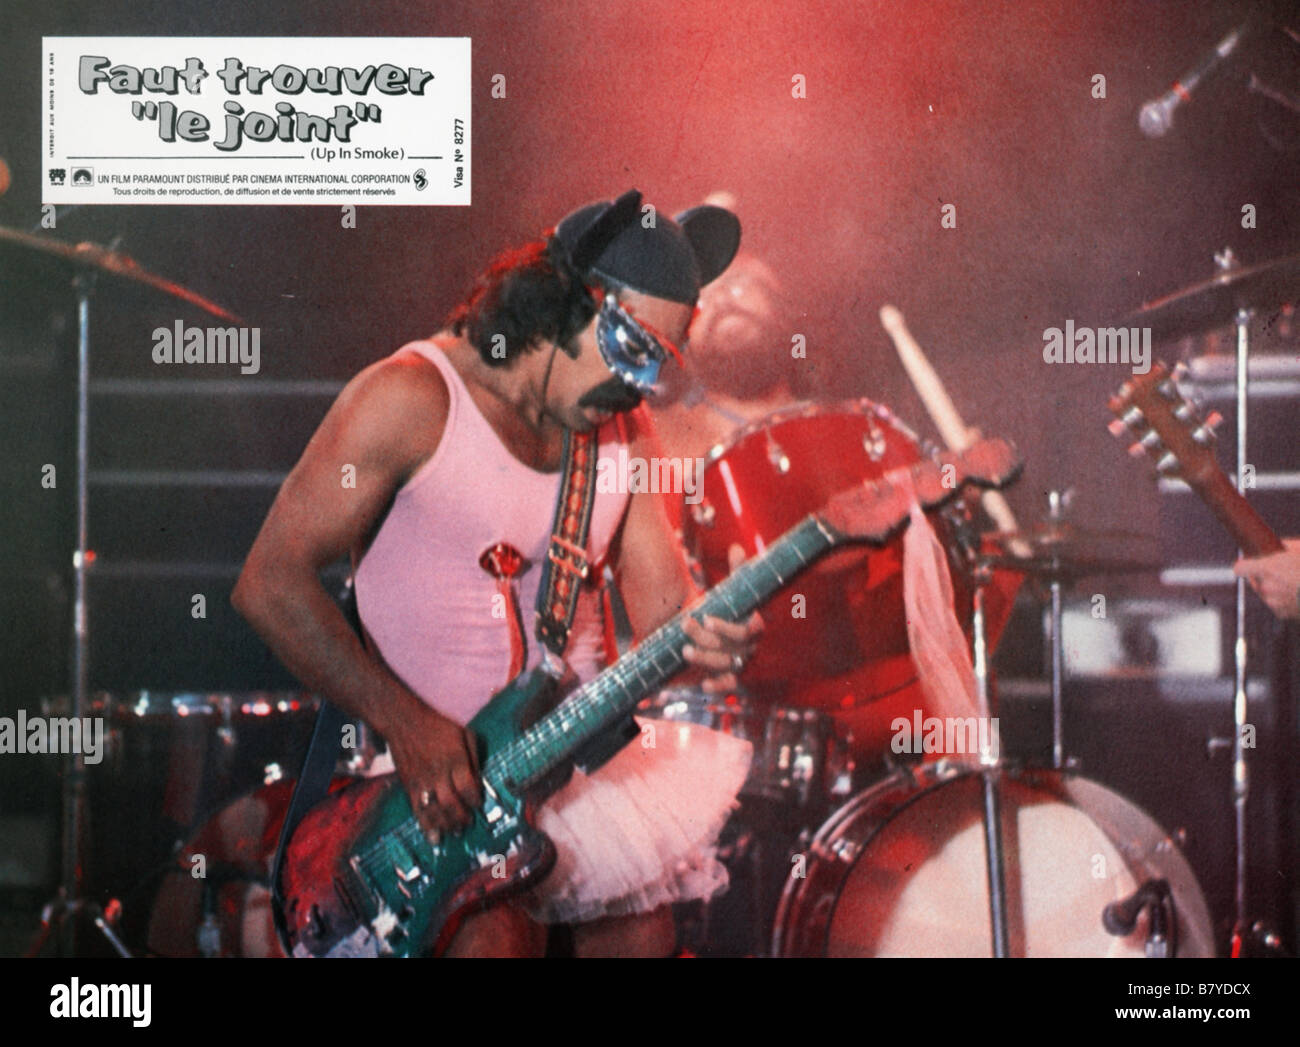 Image result for Cheech Marin Up In Smoke concert scene